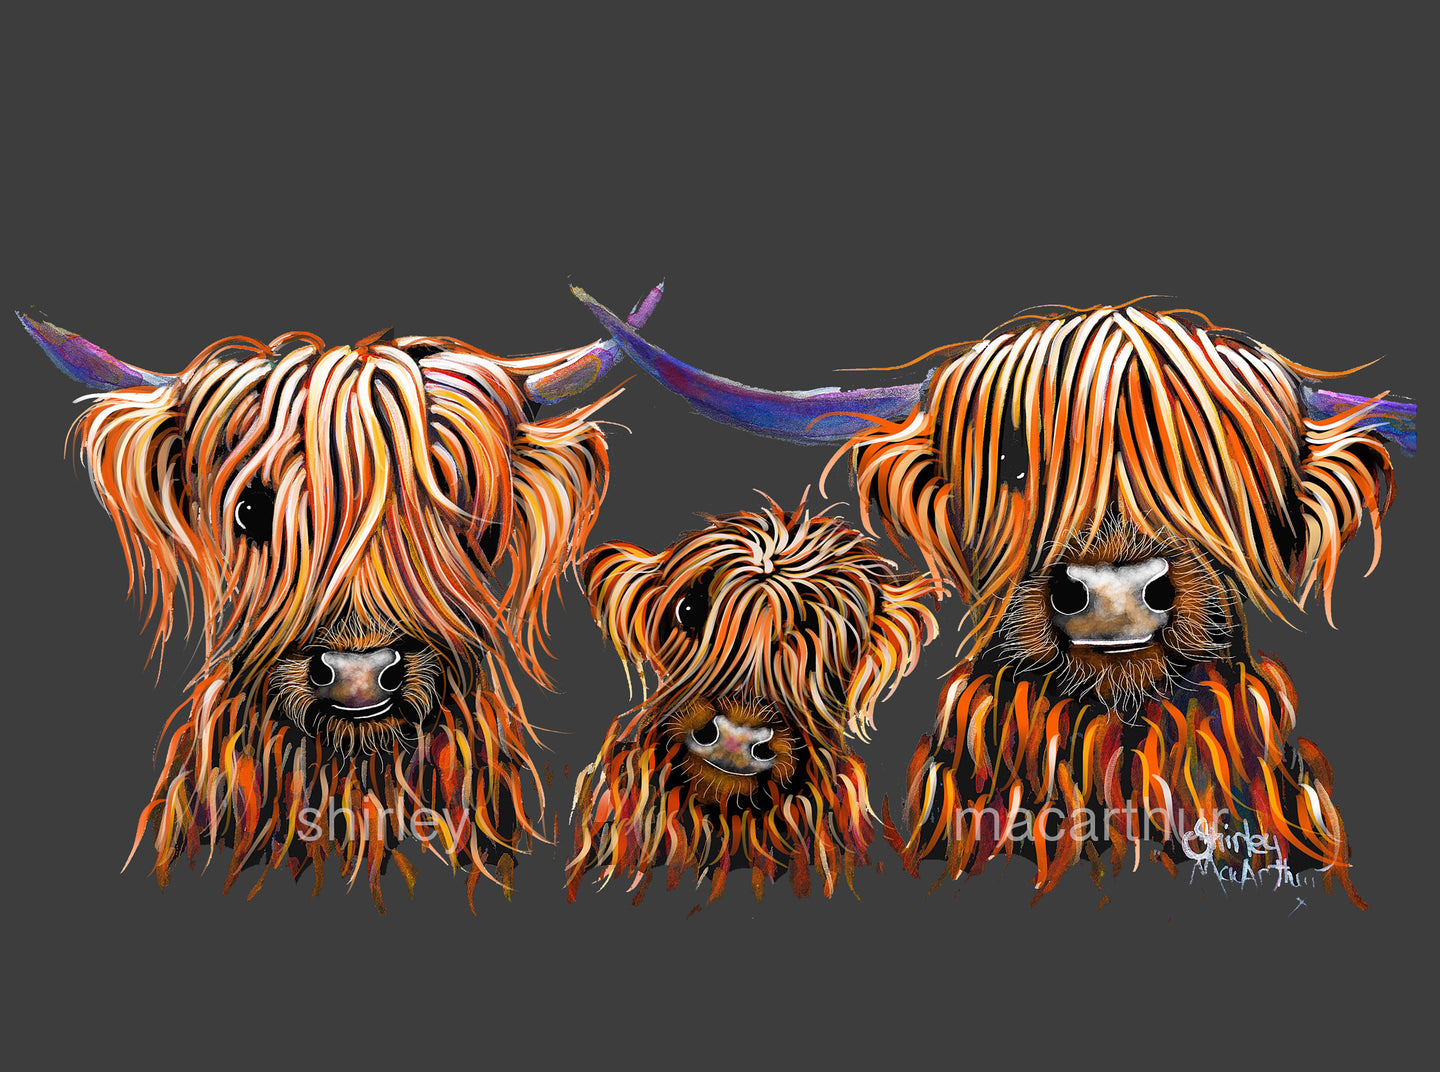 Highland Cow Prints 'The Tangerines' by Shirley MacArthur